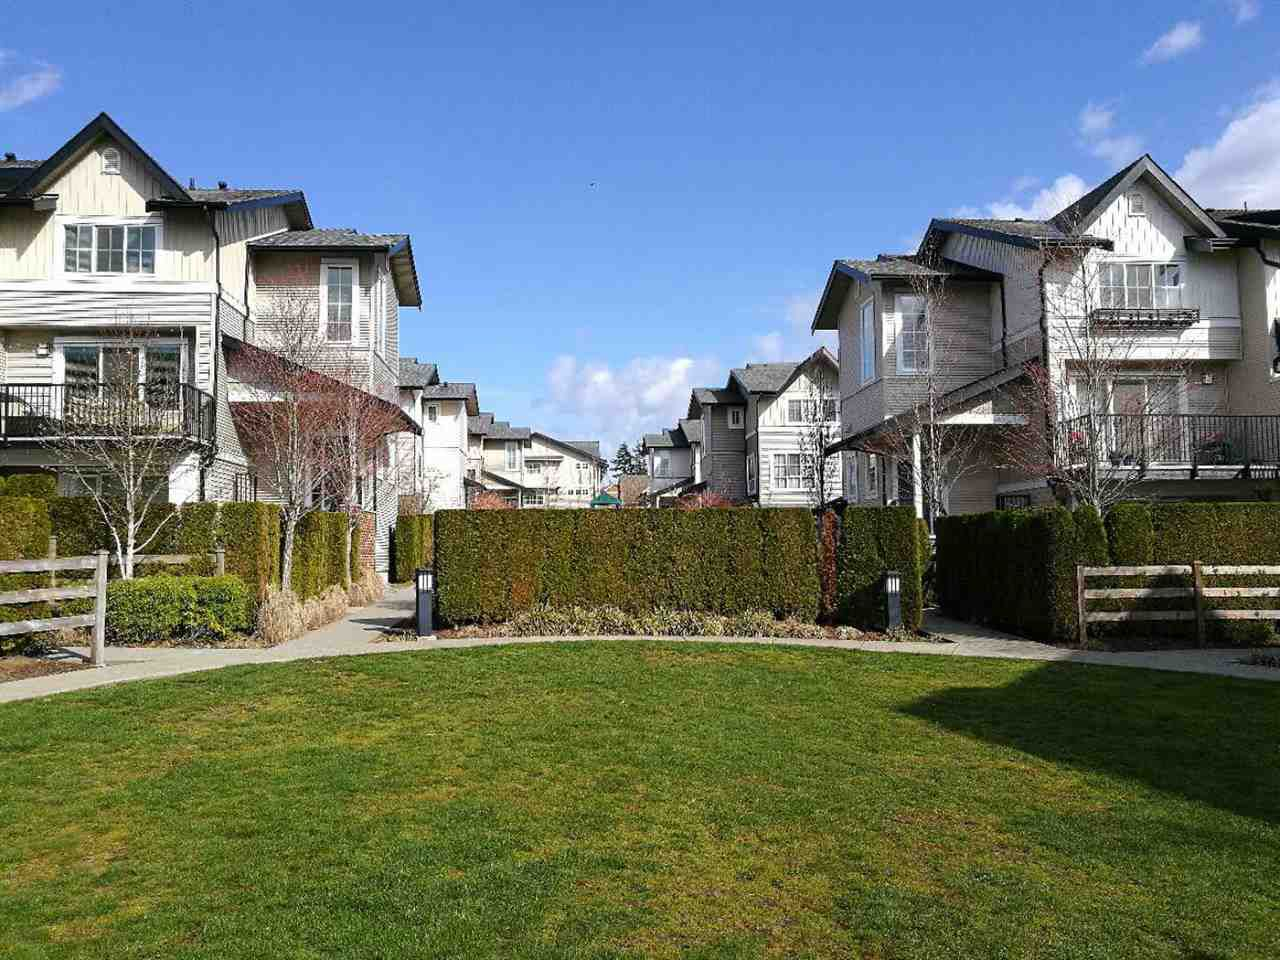 """Main Photo: 58 2450 161A Street in Surrey: Grandview Surrey Townhouse for sale in """"Glenmore"""" (South Surrey White Rock)  : MLS®# R2254879"""